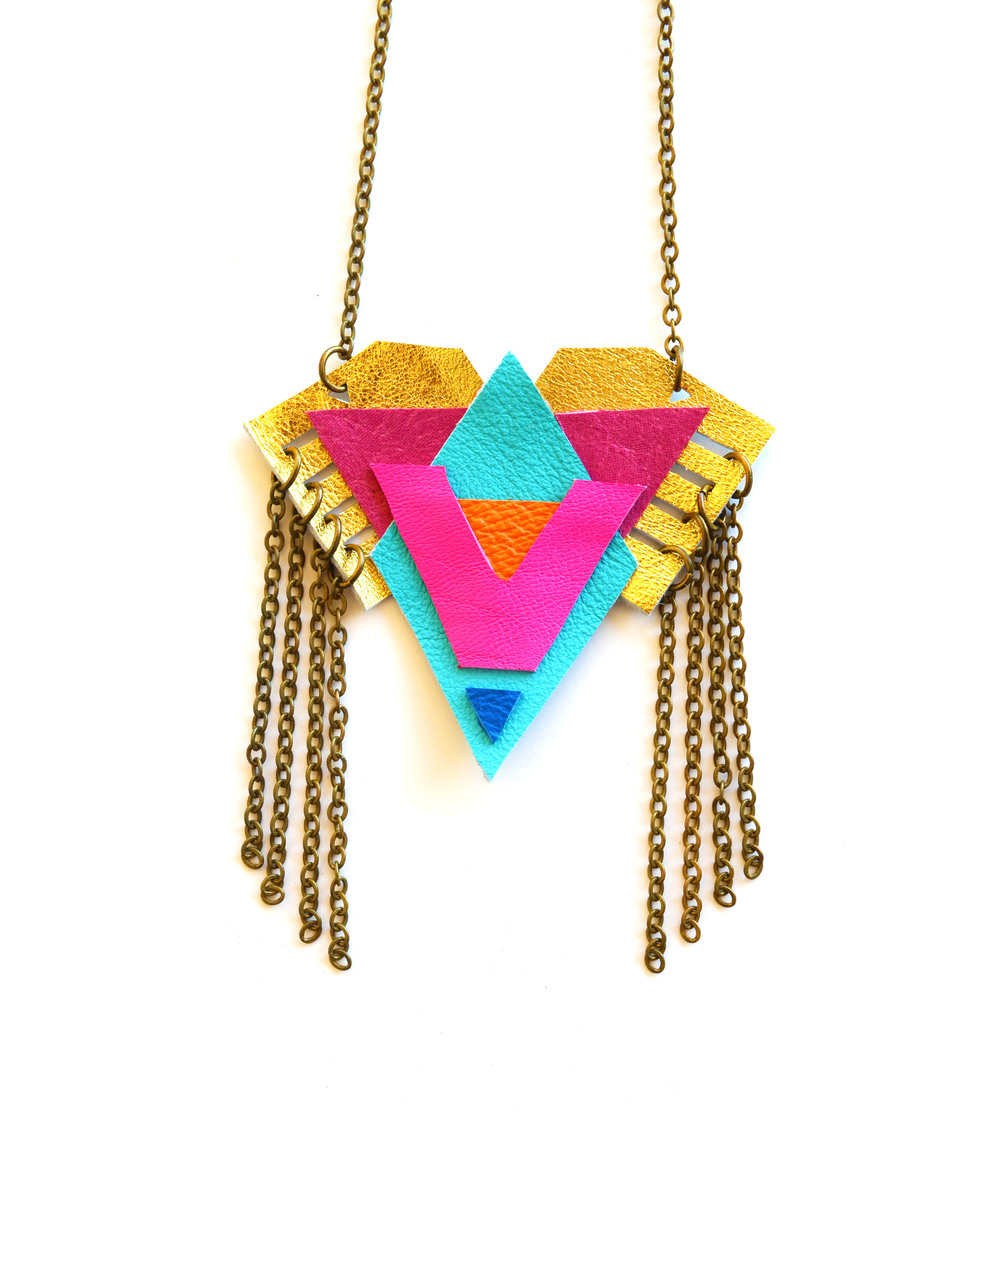 Neon Pendant Necklace Triangle Pattern and Fringe 3.jpg